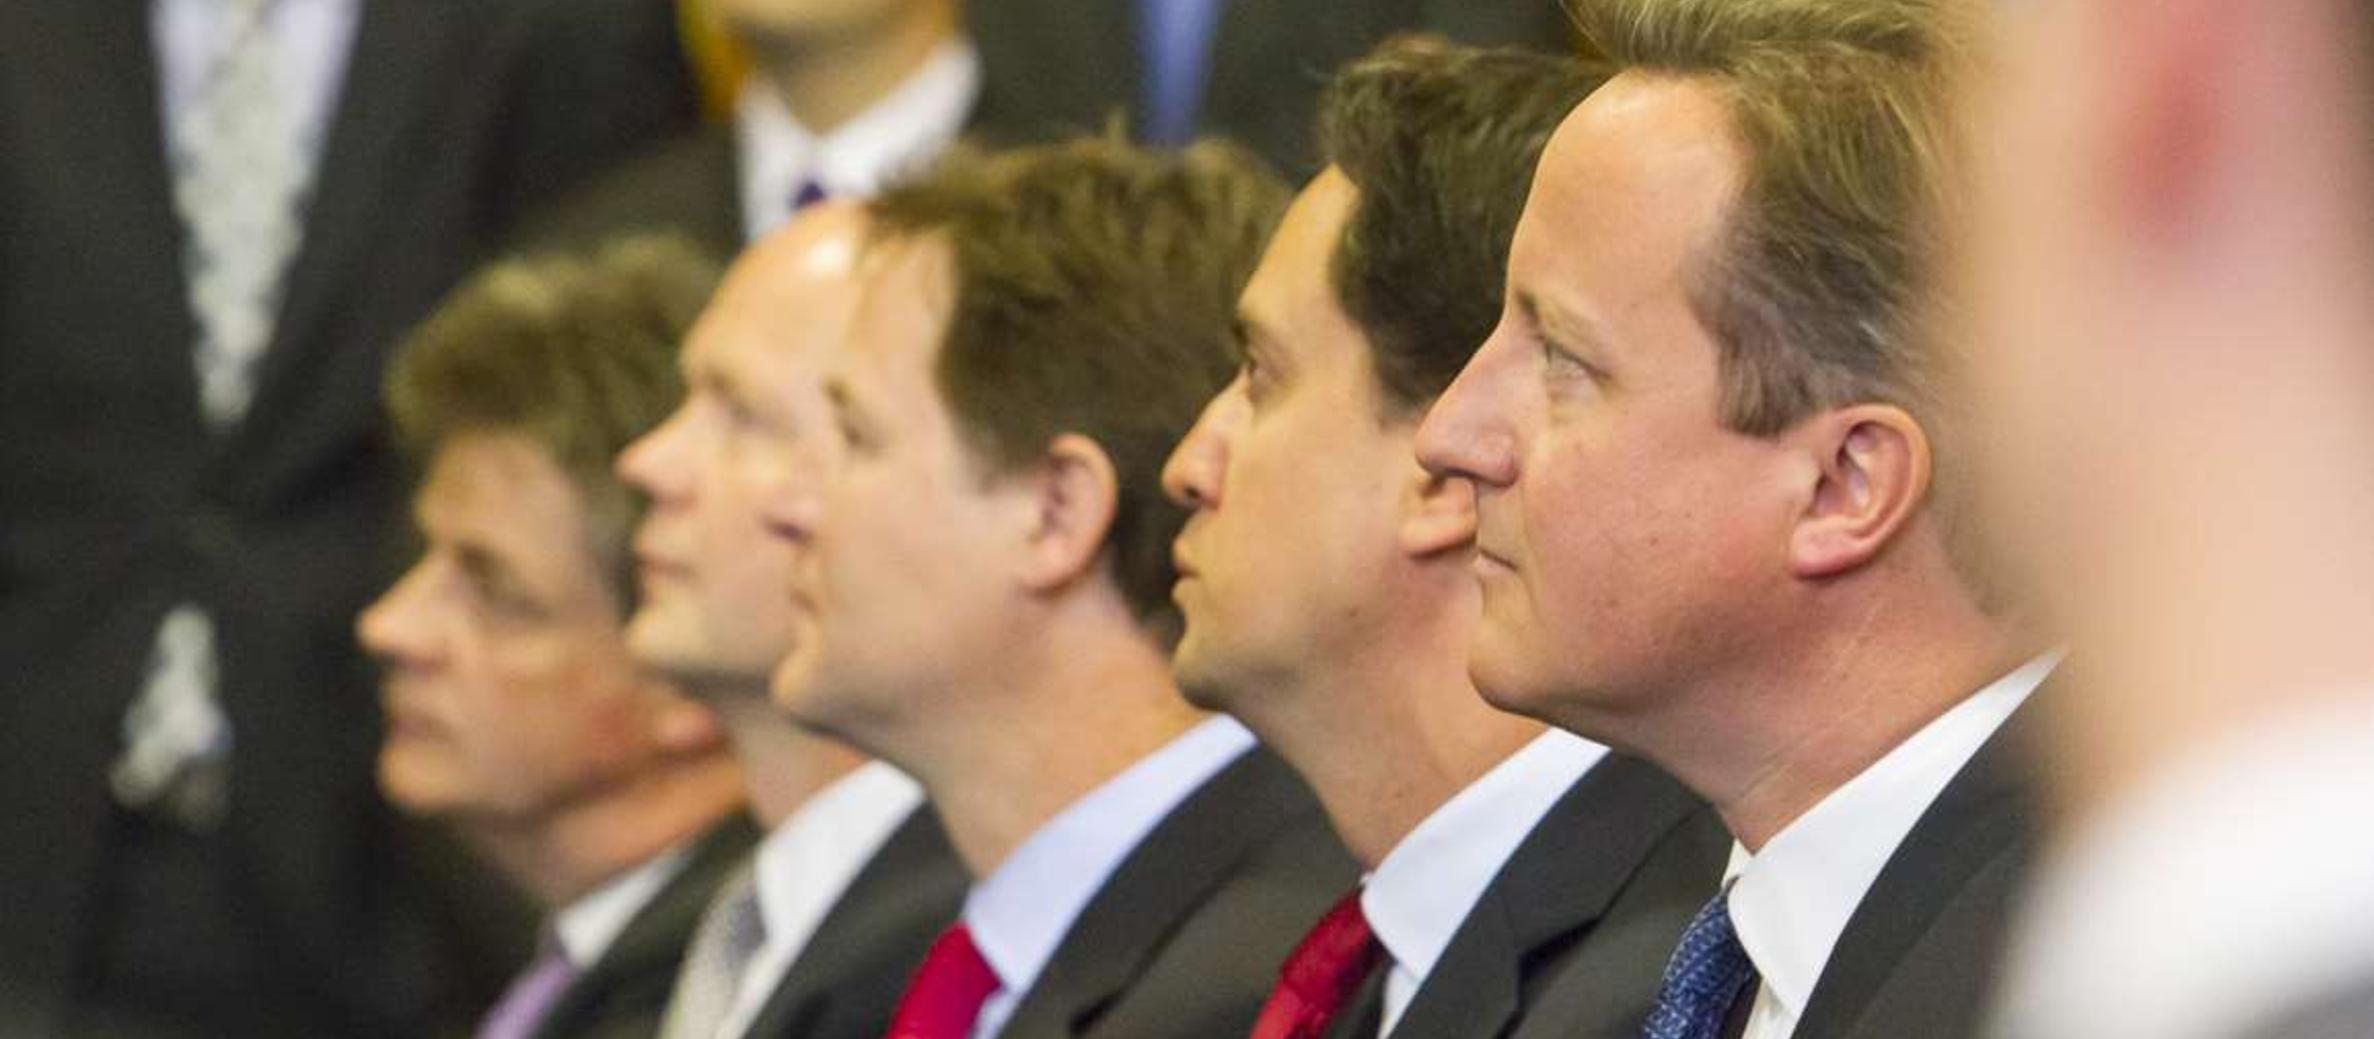 UK: Cameron, Miliband and Clegg in last ditch appeal to Jewish voters